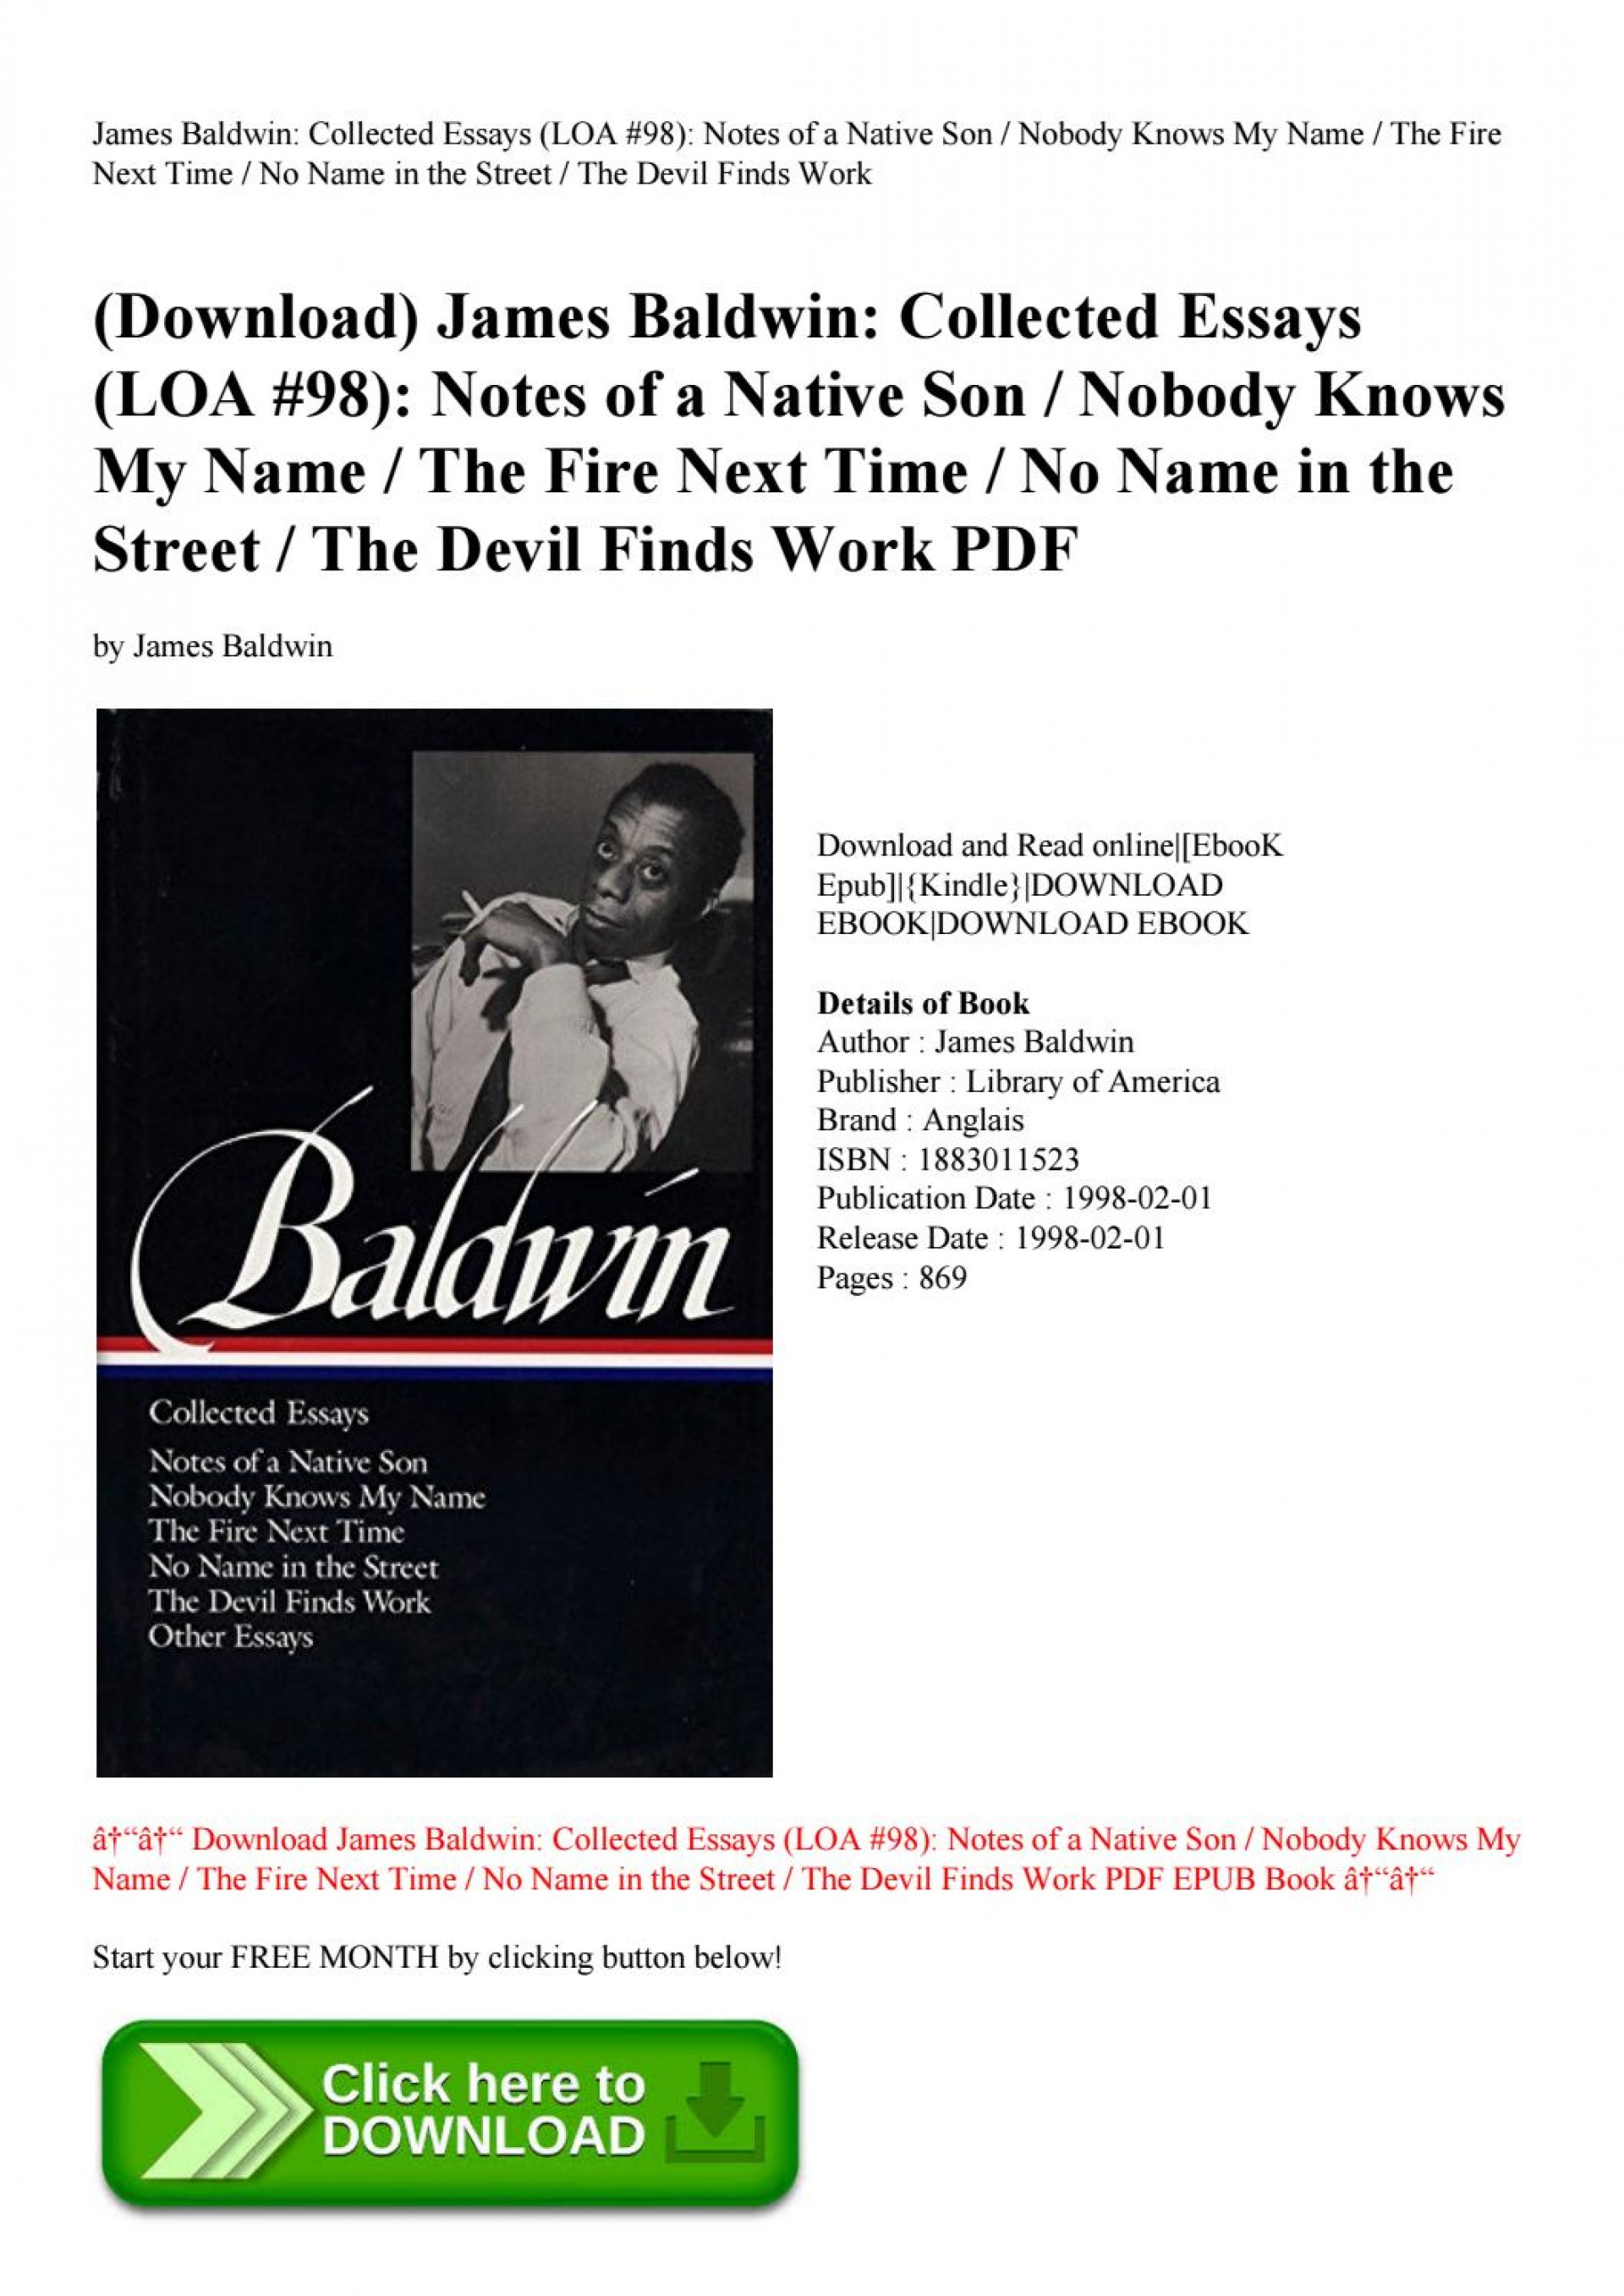 010 Page 1 Essay Example James Baldwin Collected Wondrous Essays Google Books Pdf Table Of Contents 1920